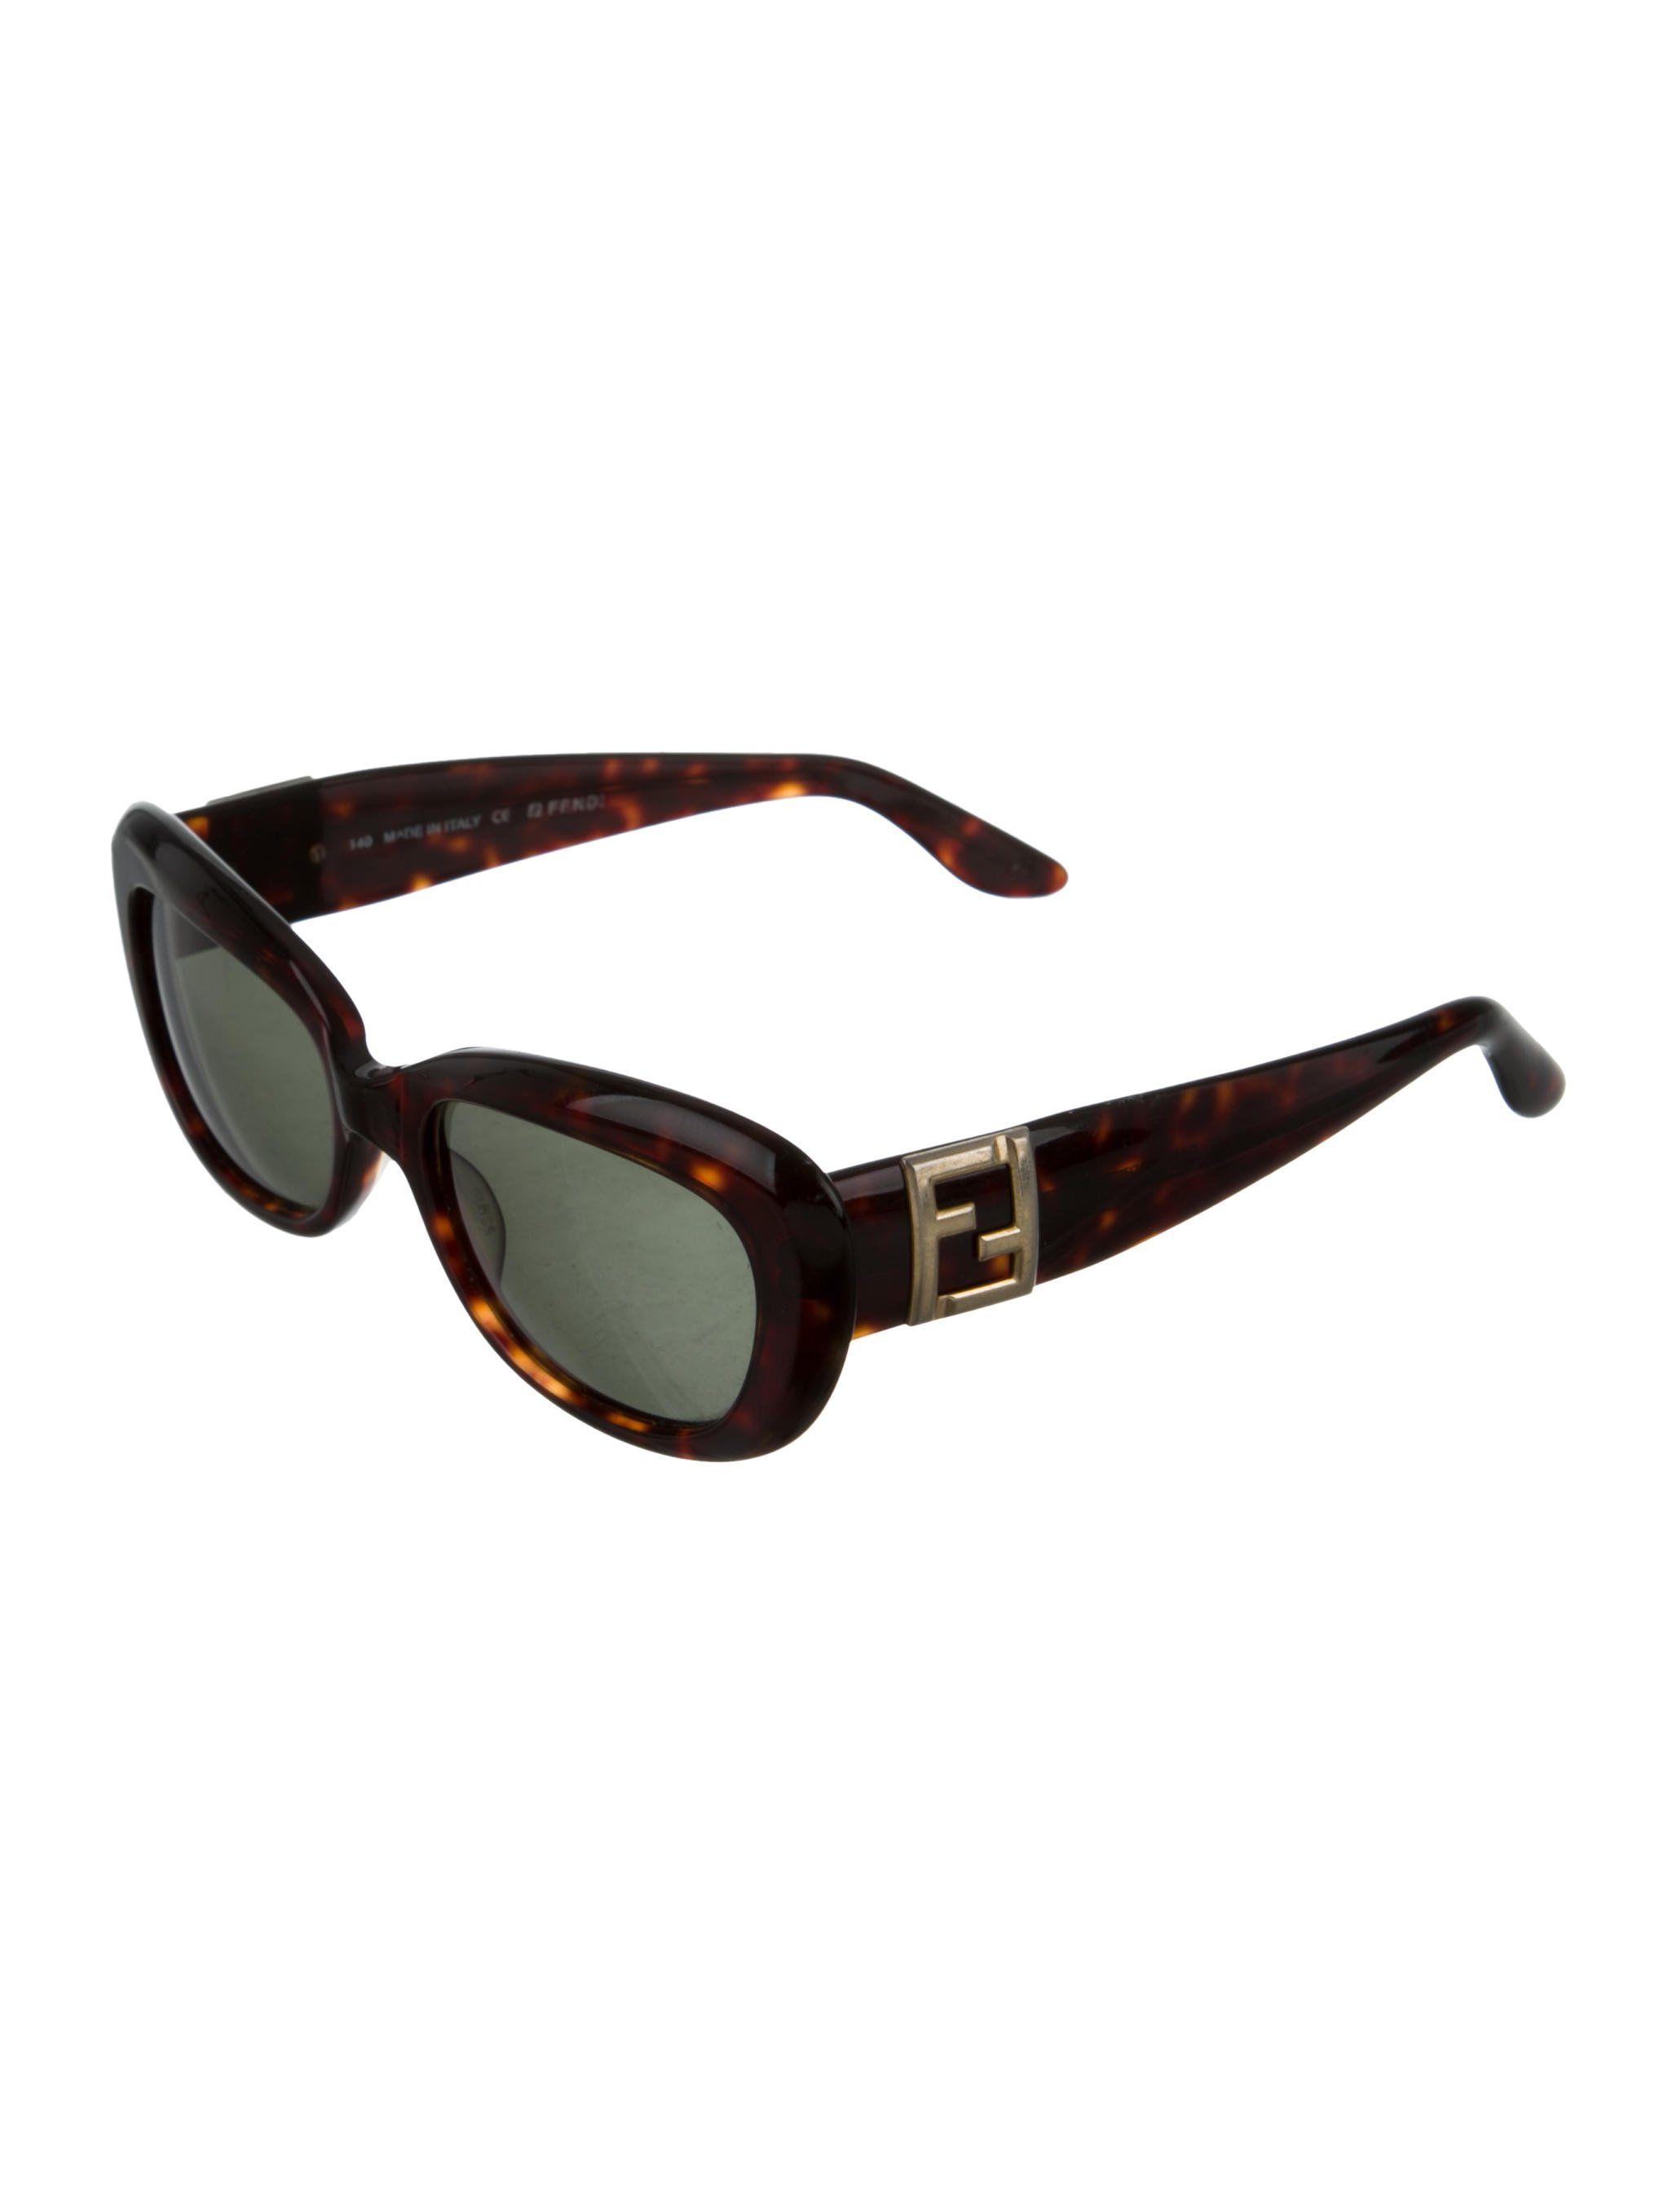 17ad8370393 Brown and black acetate Fendi tortoiseshell sunglasses with tinted lenses  and logos at arms.